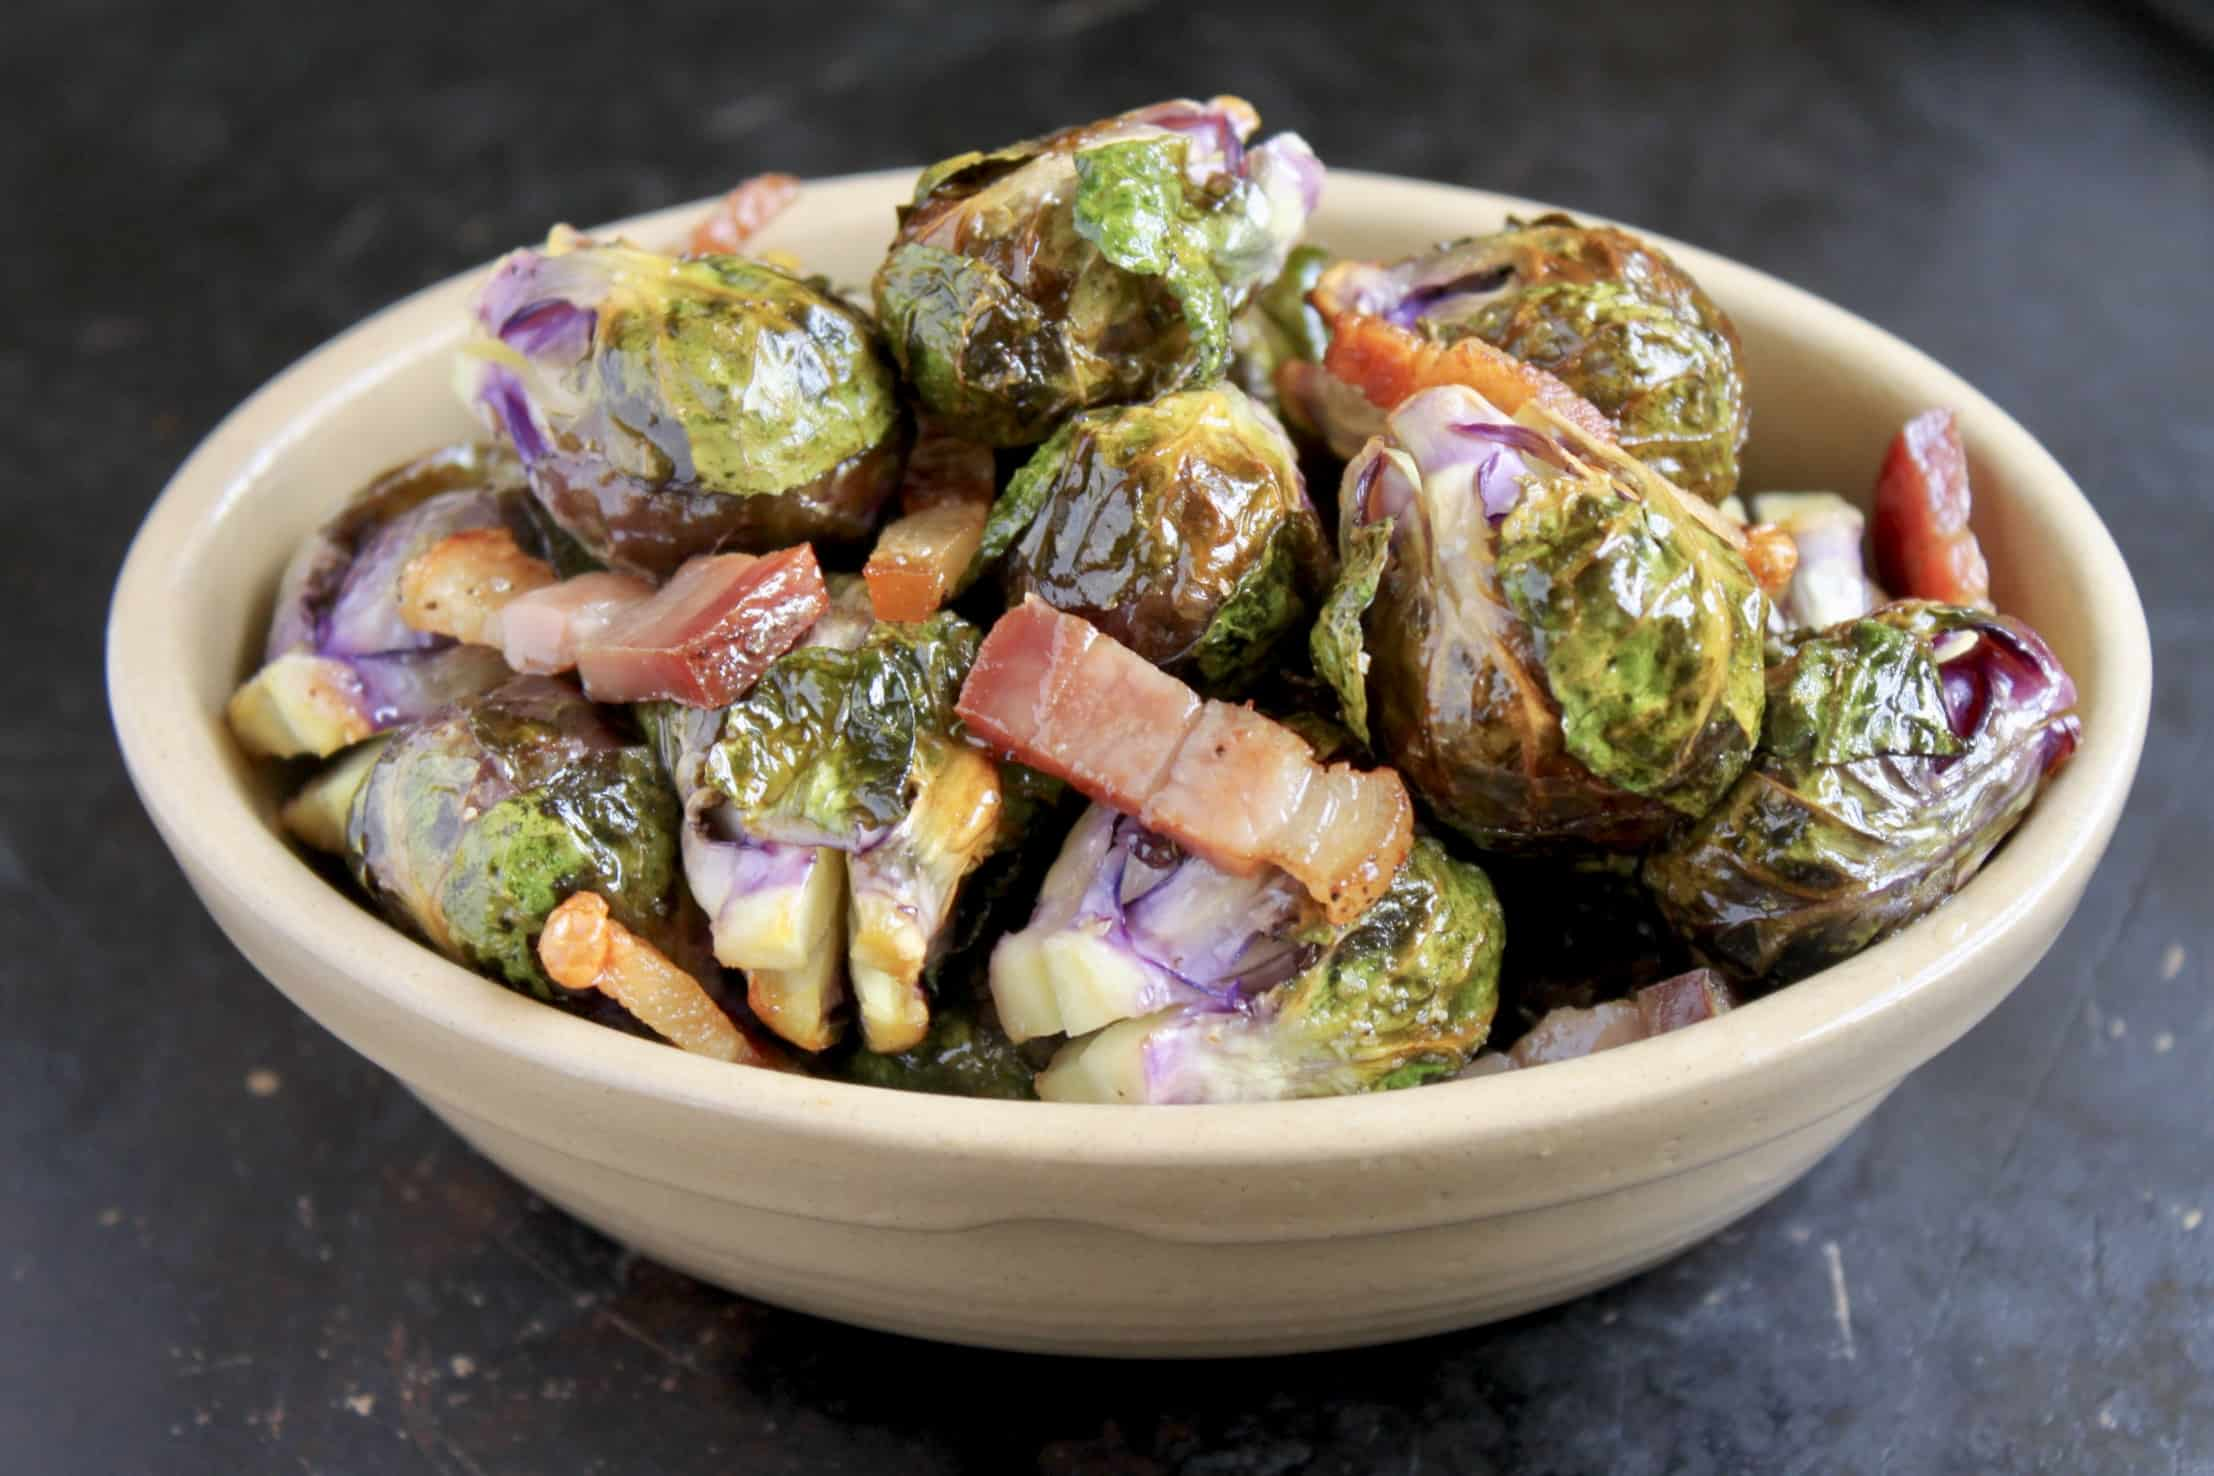 roasted brussels sprouts with pancetta in an oval dish